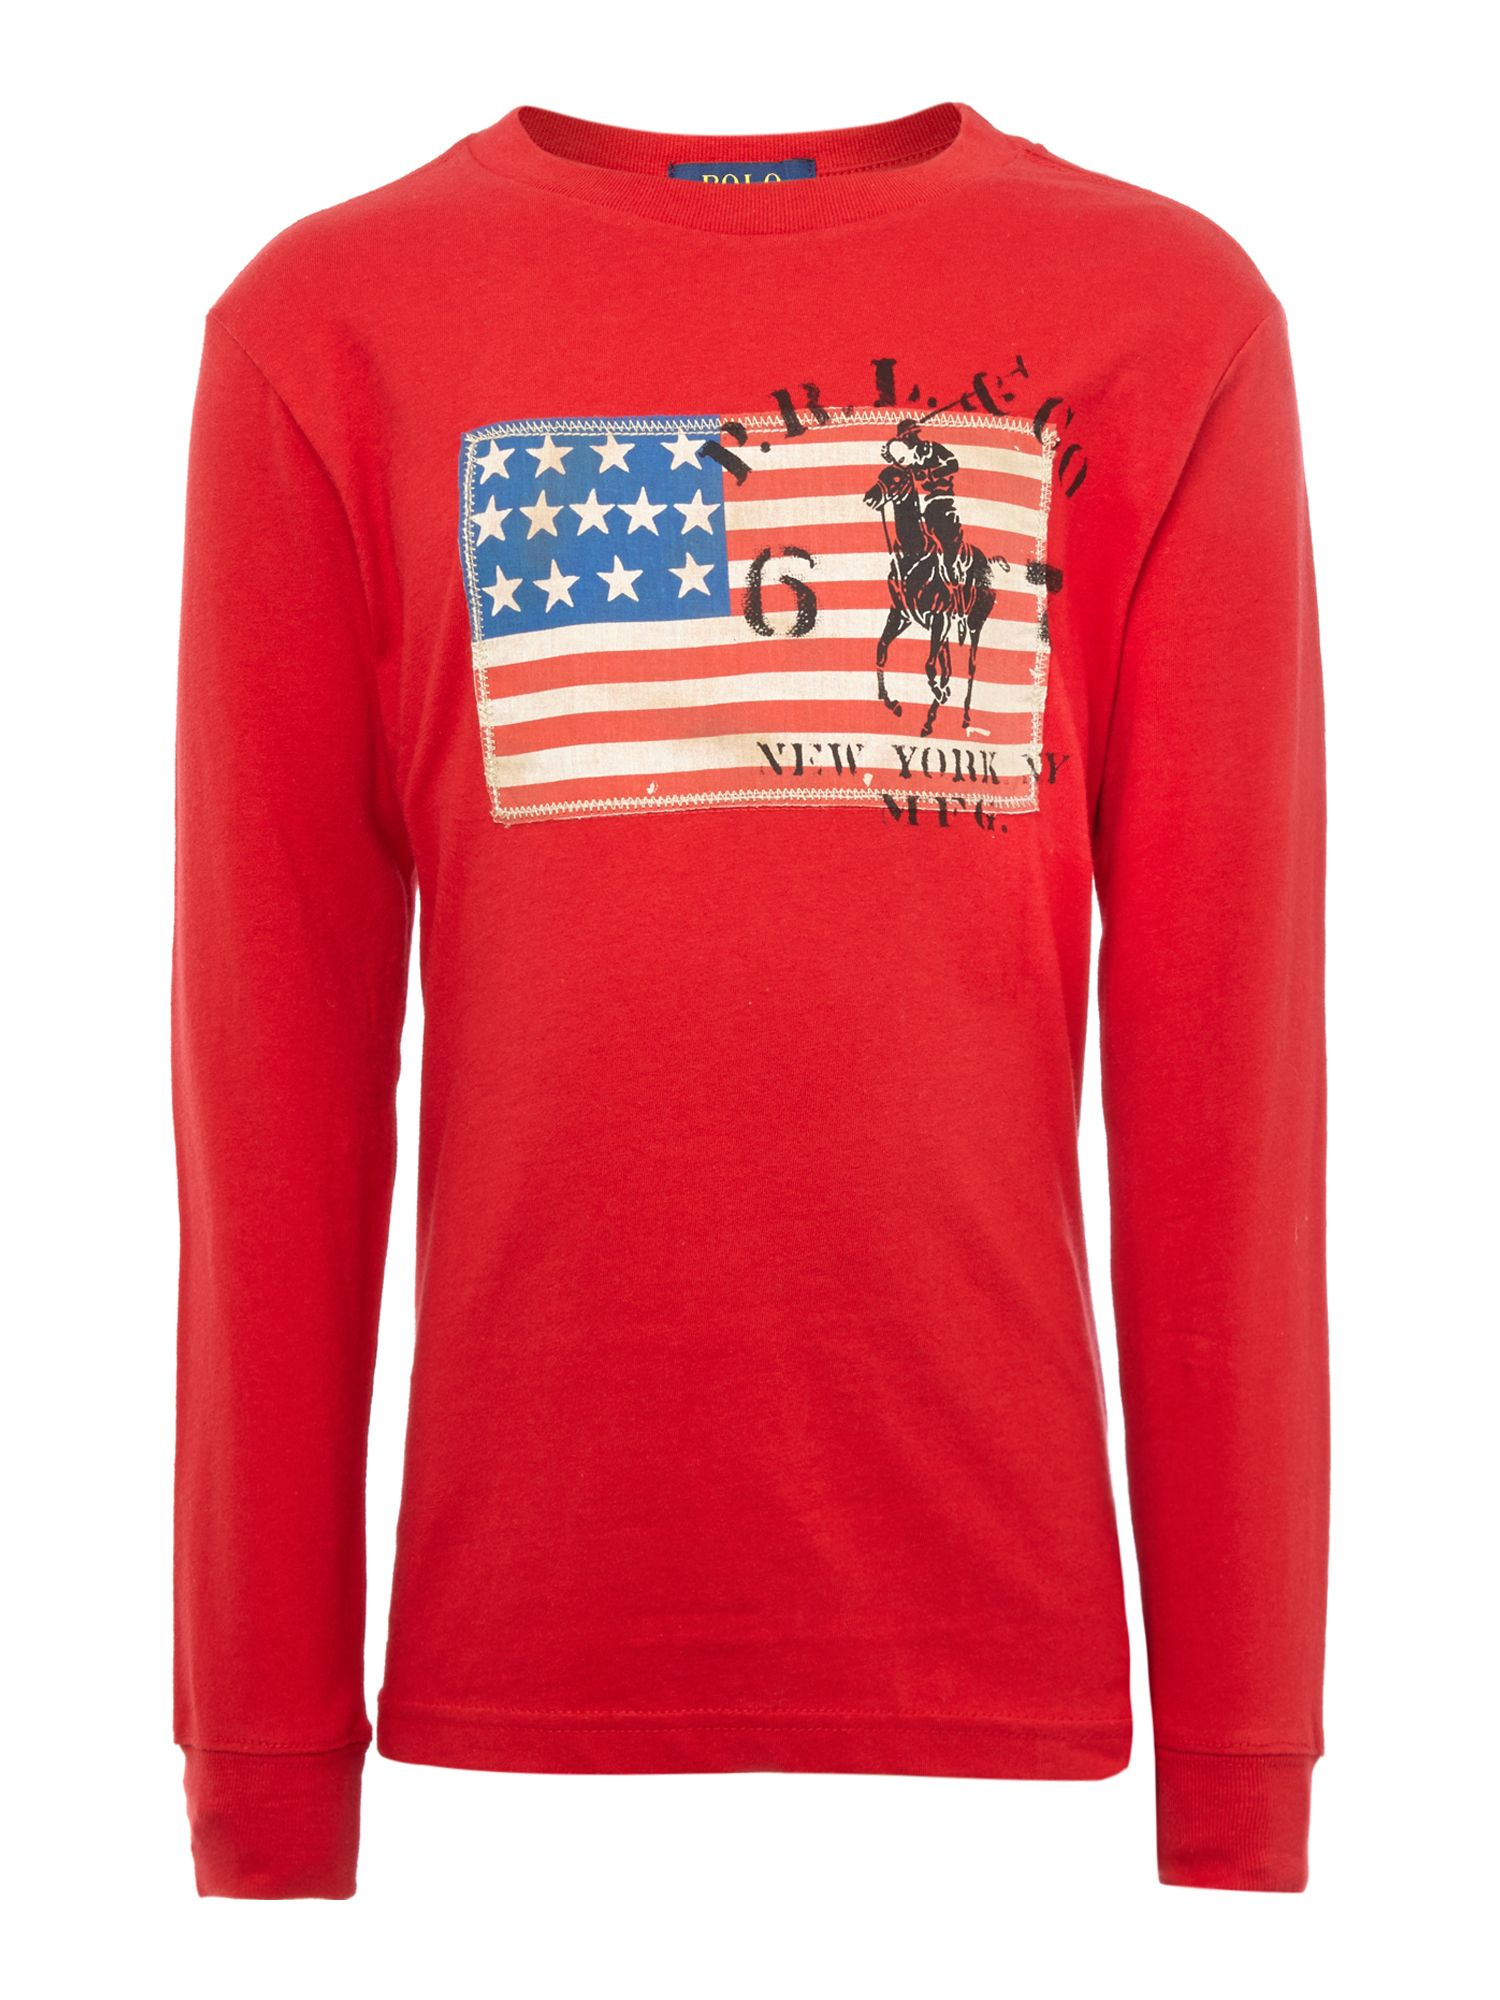 Boys USA flag applique t-shirt